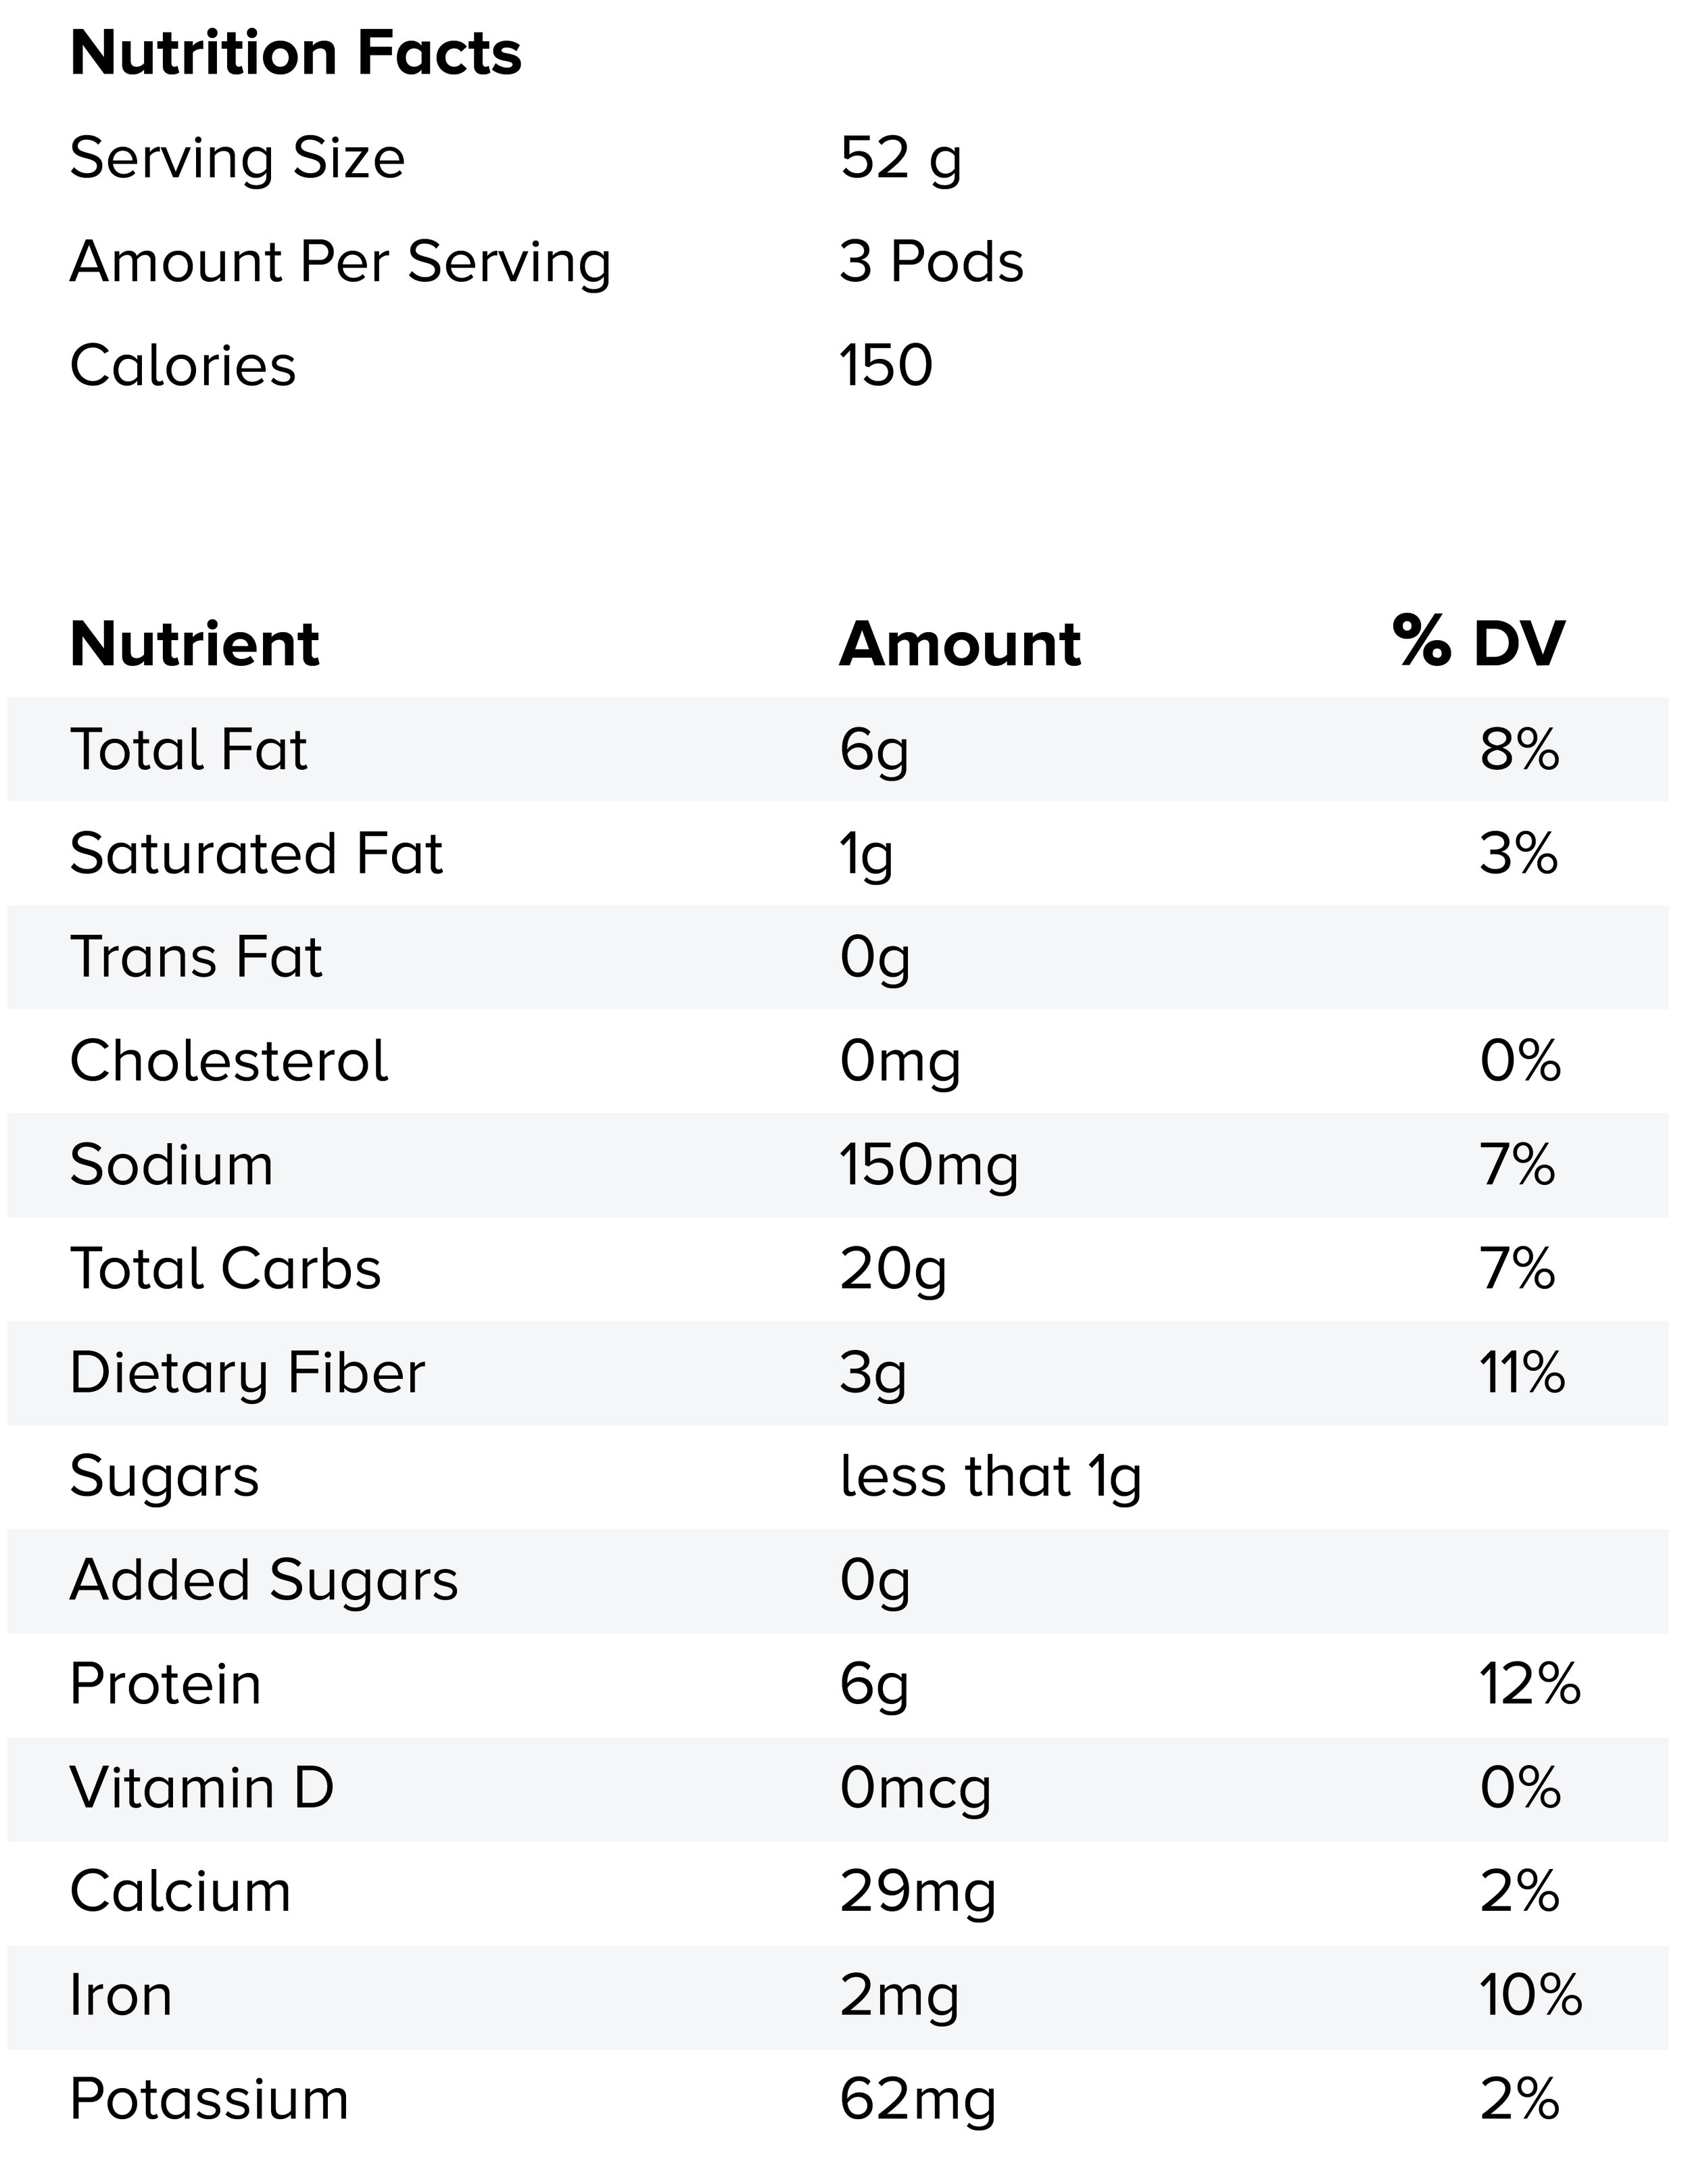 olive nutrition facts web 3-2-19-01.jpg